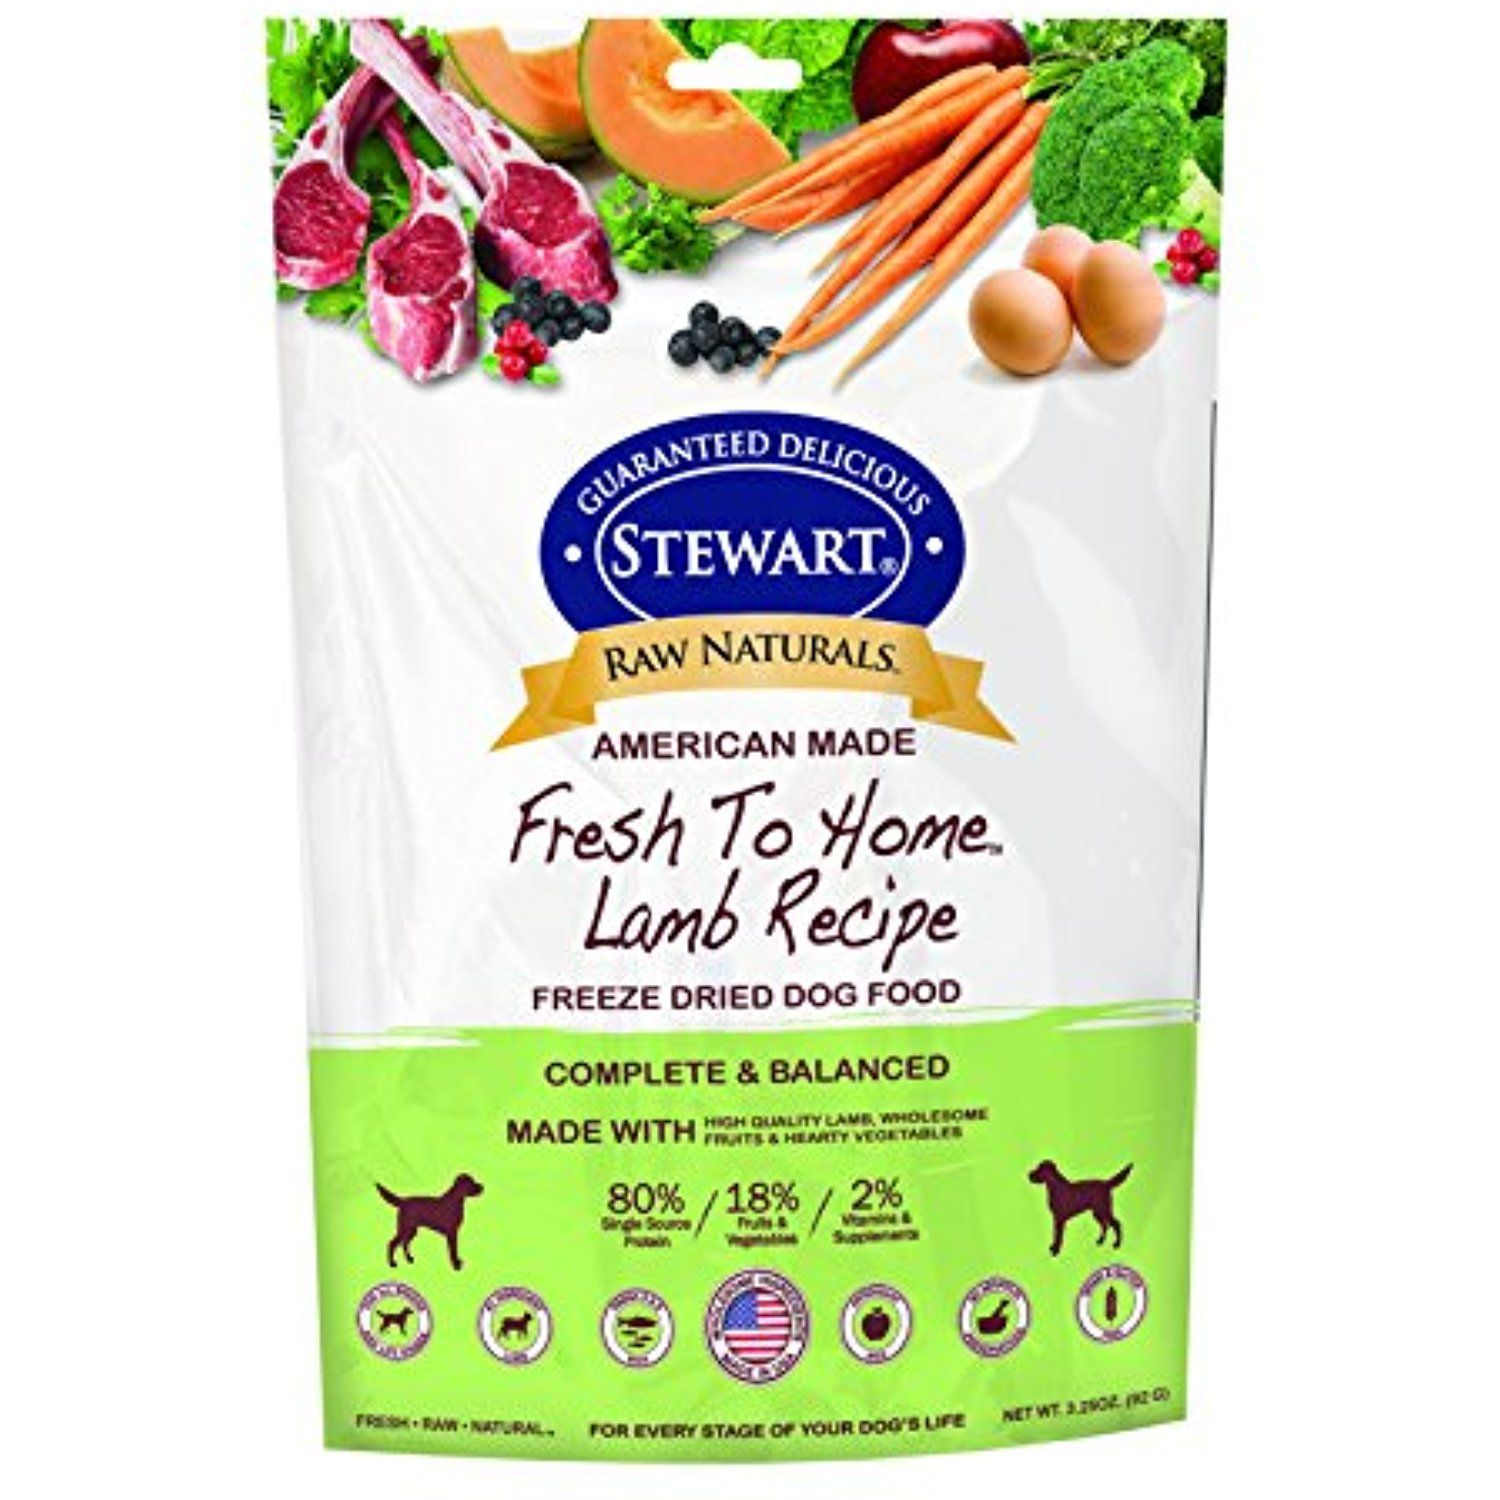 Stewart 402765 Lamb Raw Naturals Freeze Dried Dog Food 3 25 Oz You Can Read More Reviews Of The Dog Food Recipes Raw Dog Food Recipes Freeze Dried Dog Food